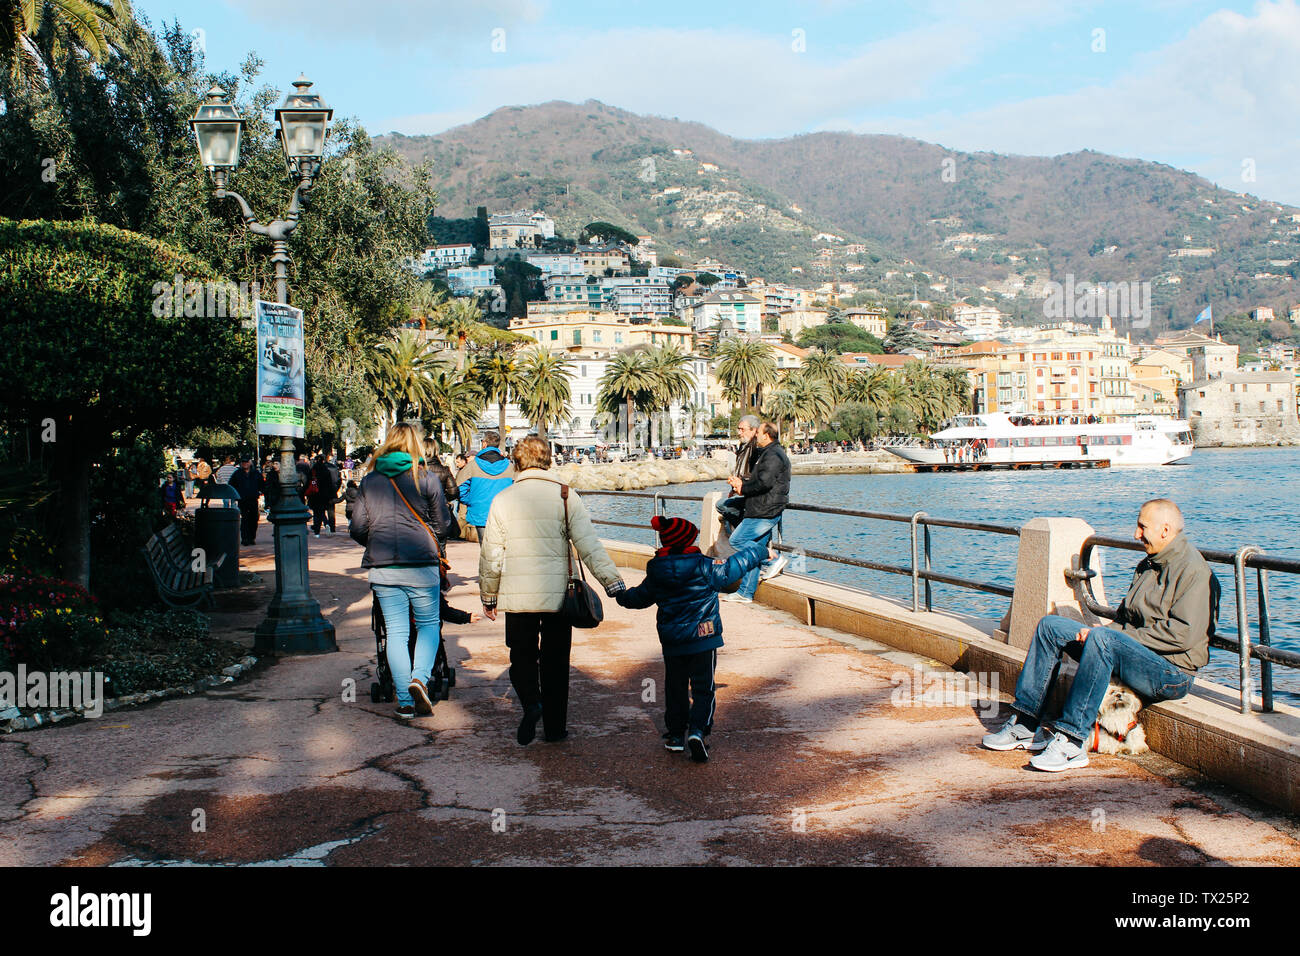 Rapallo, Italy - 03 27 2013: people walk along the waterfront. View of the streets of Rapallo. - Stock Image